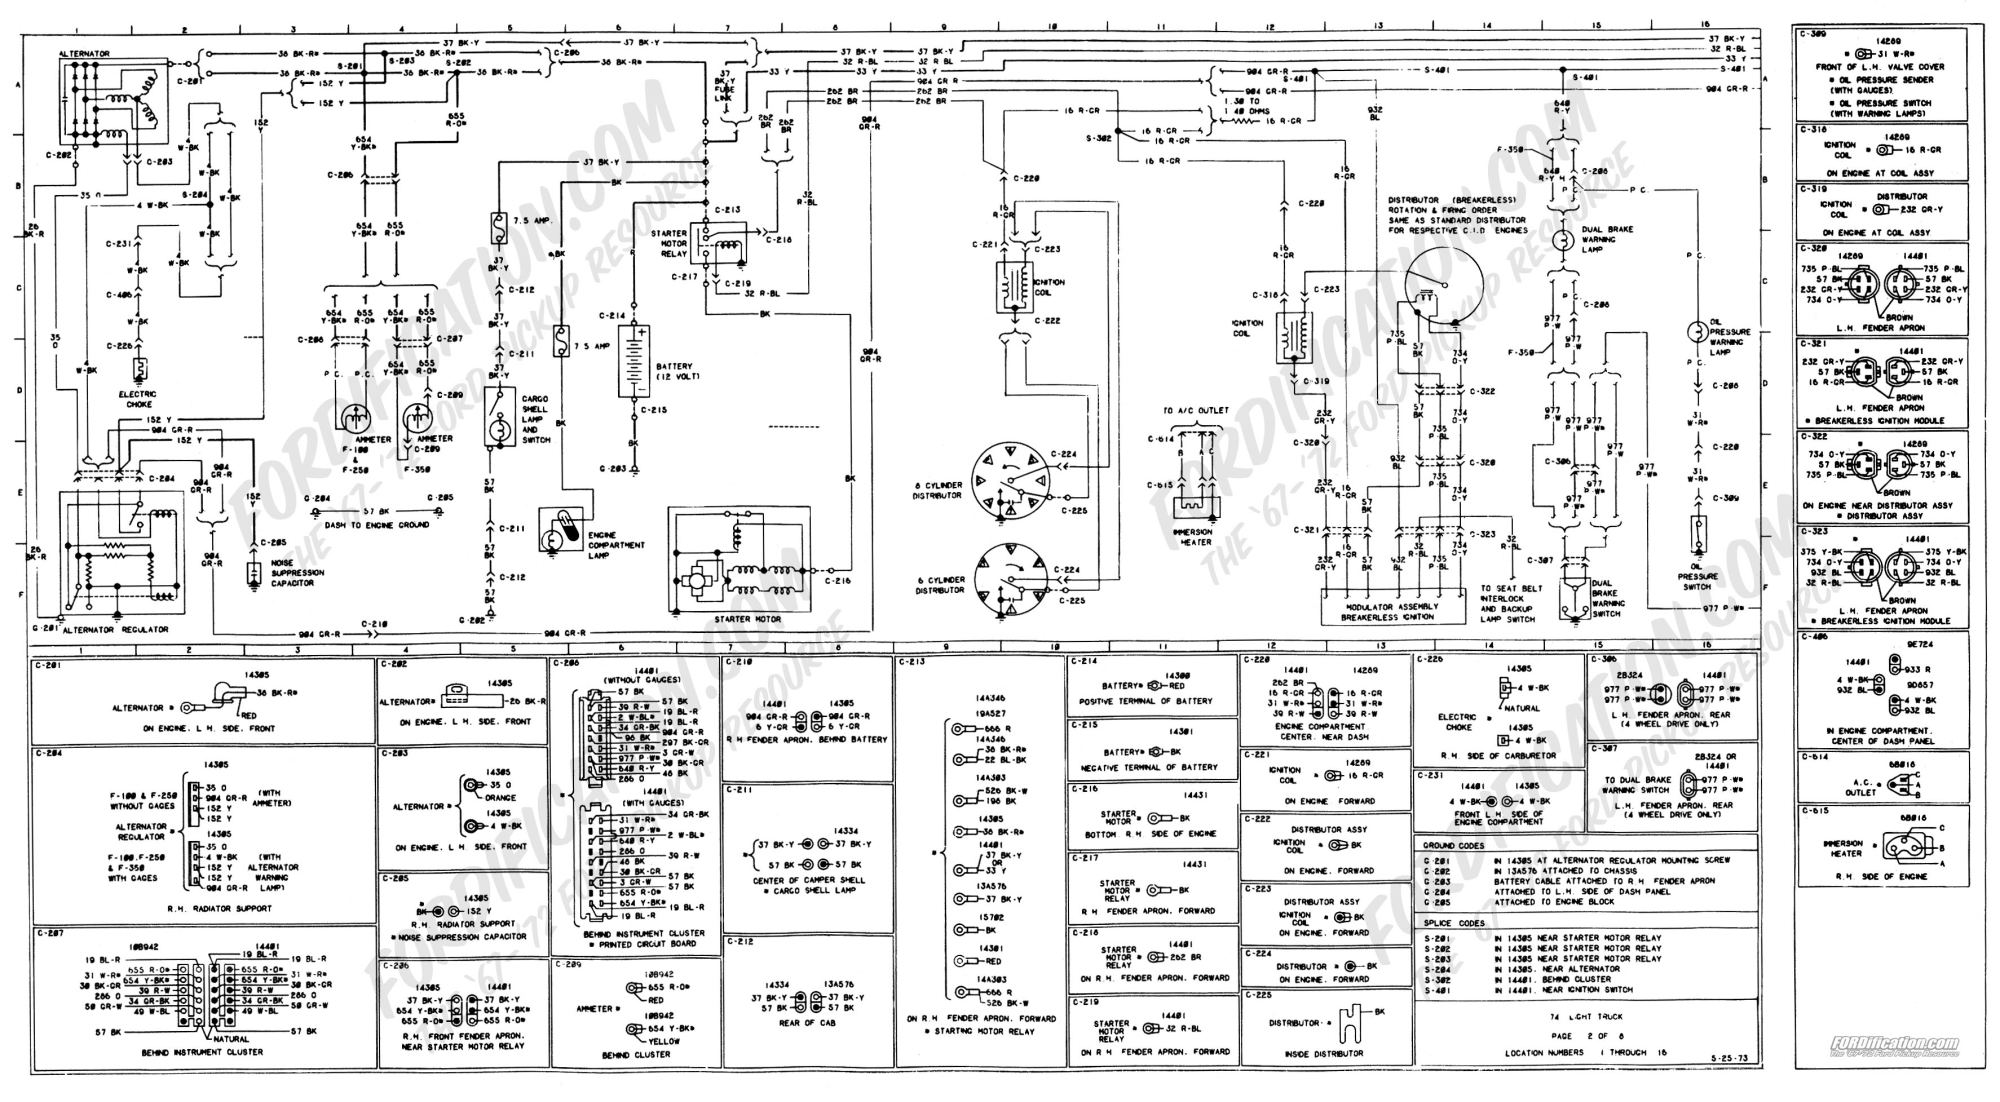 hight resolution of 79 ford wiring diagram wiring diagram schemes mitsubishi starion wiring diagram 1973 1979 ford truck wiring